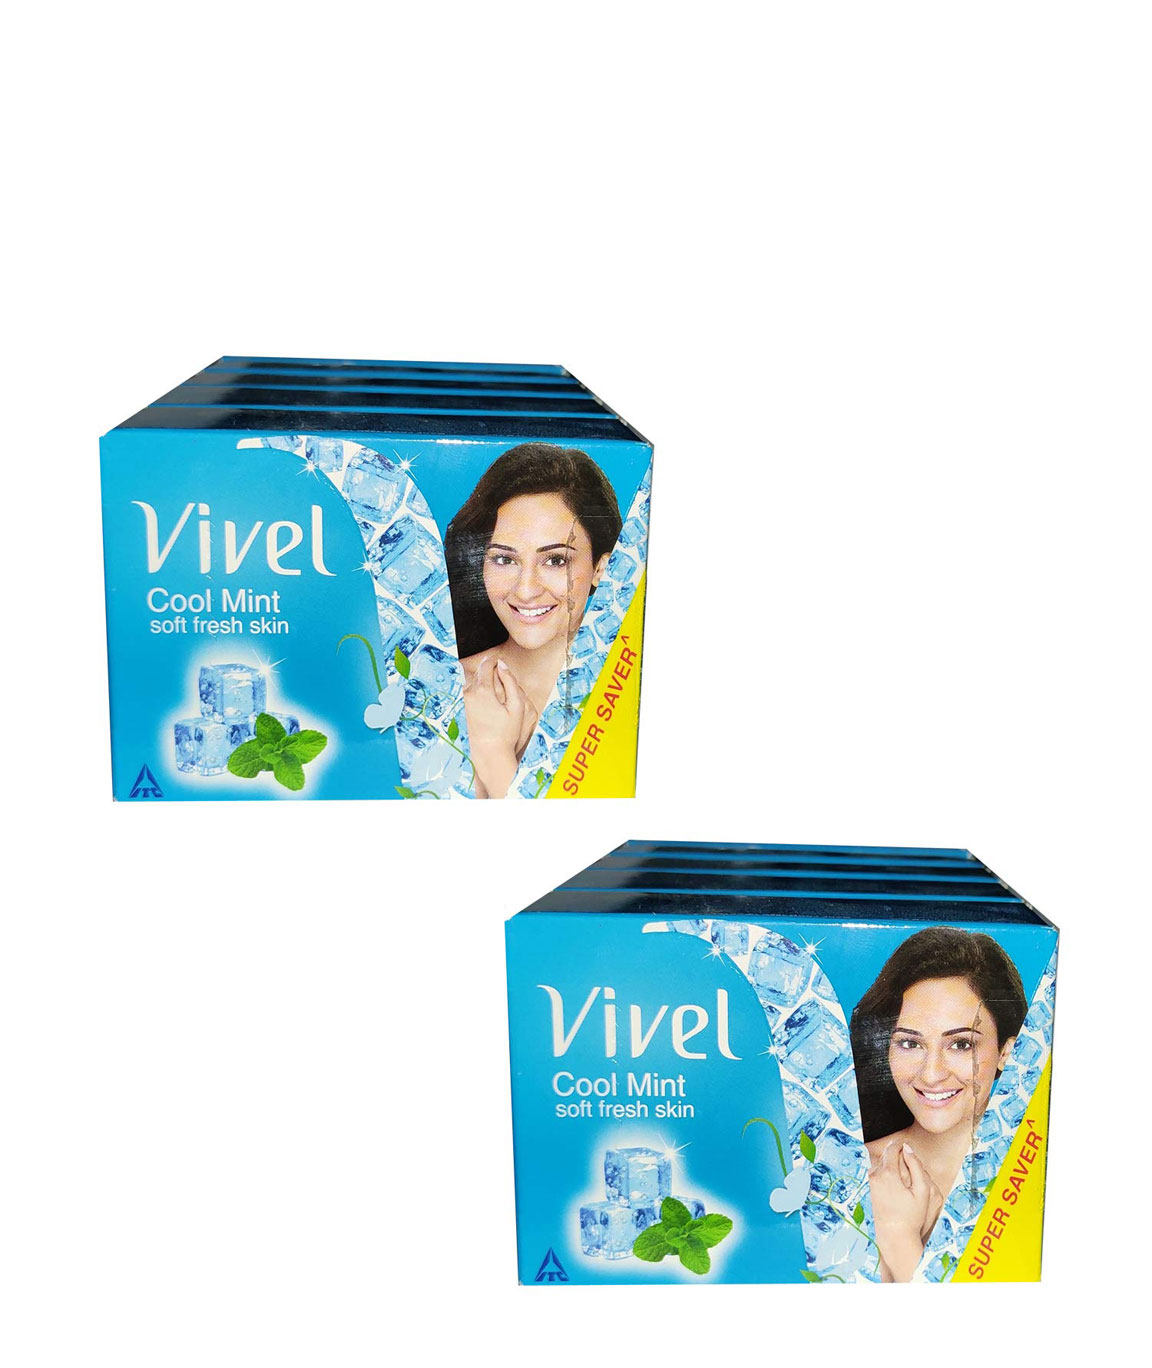 VIVEL cool mint soft skin soap 100 gm each pack8 SOAP